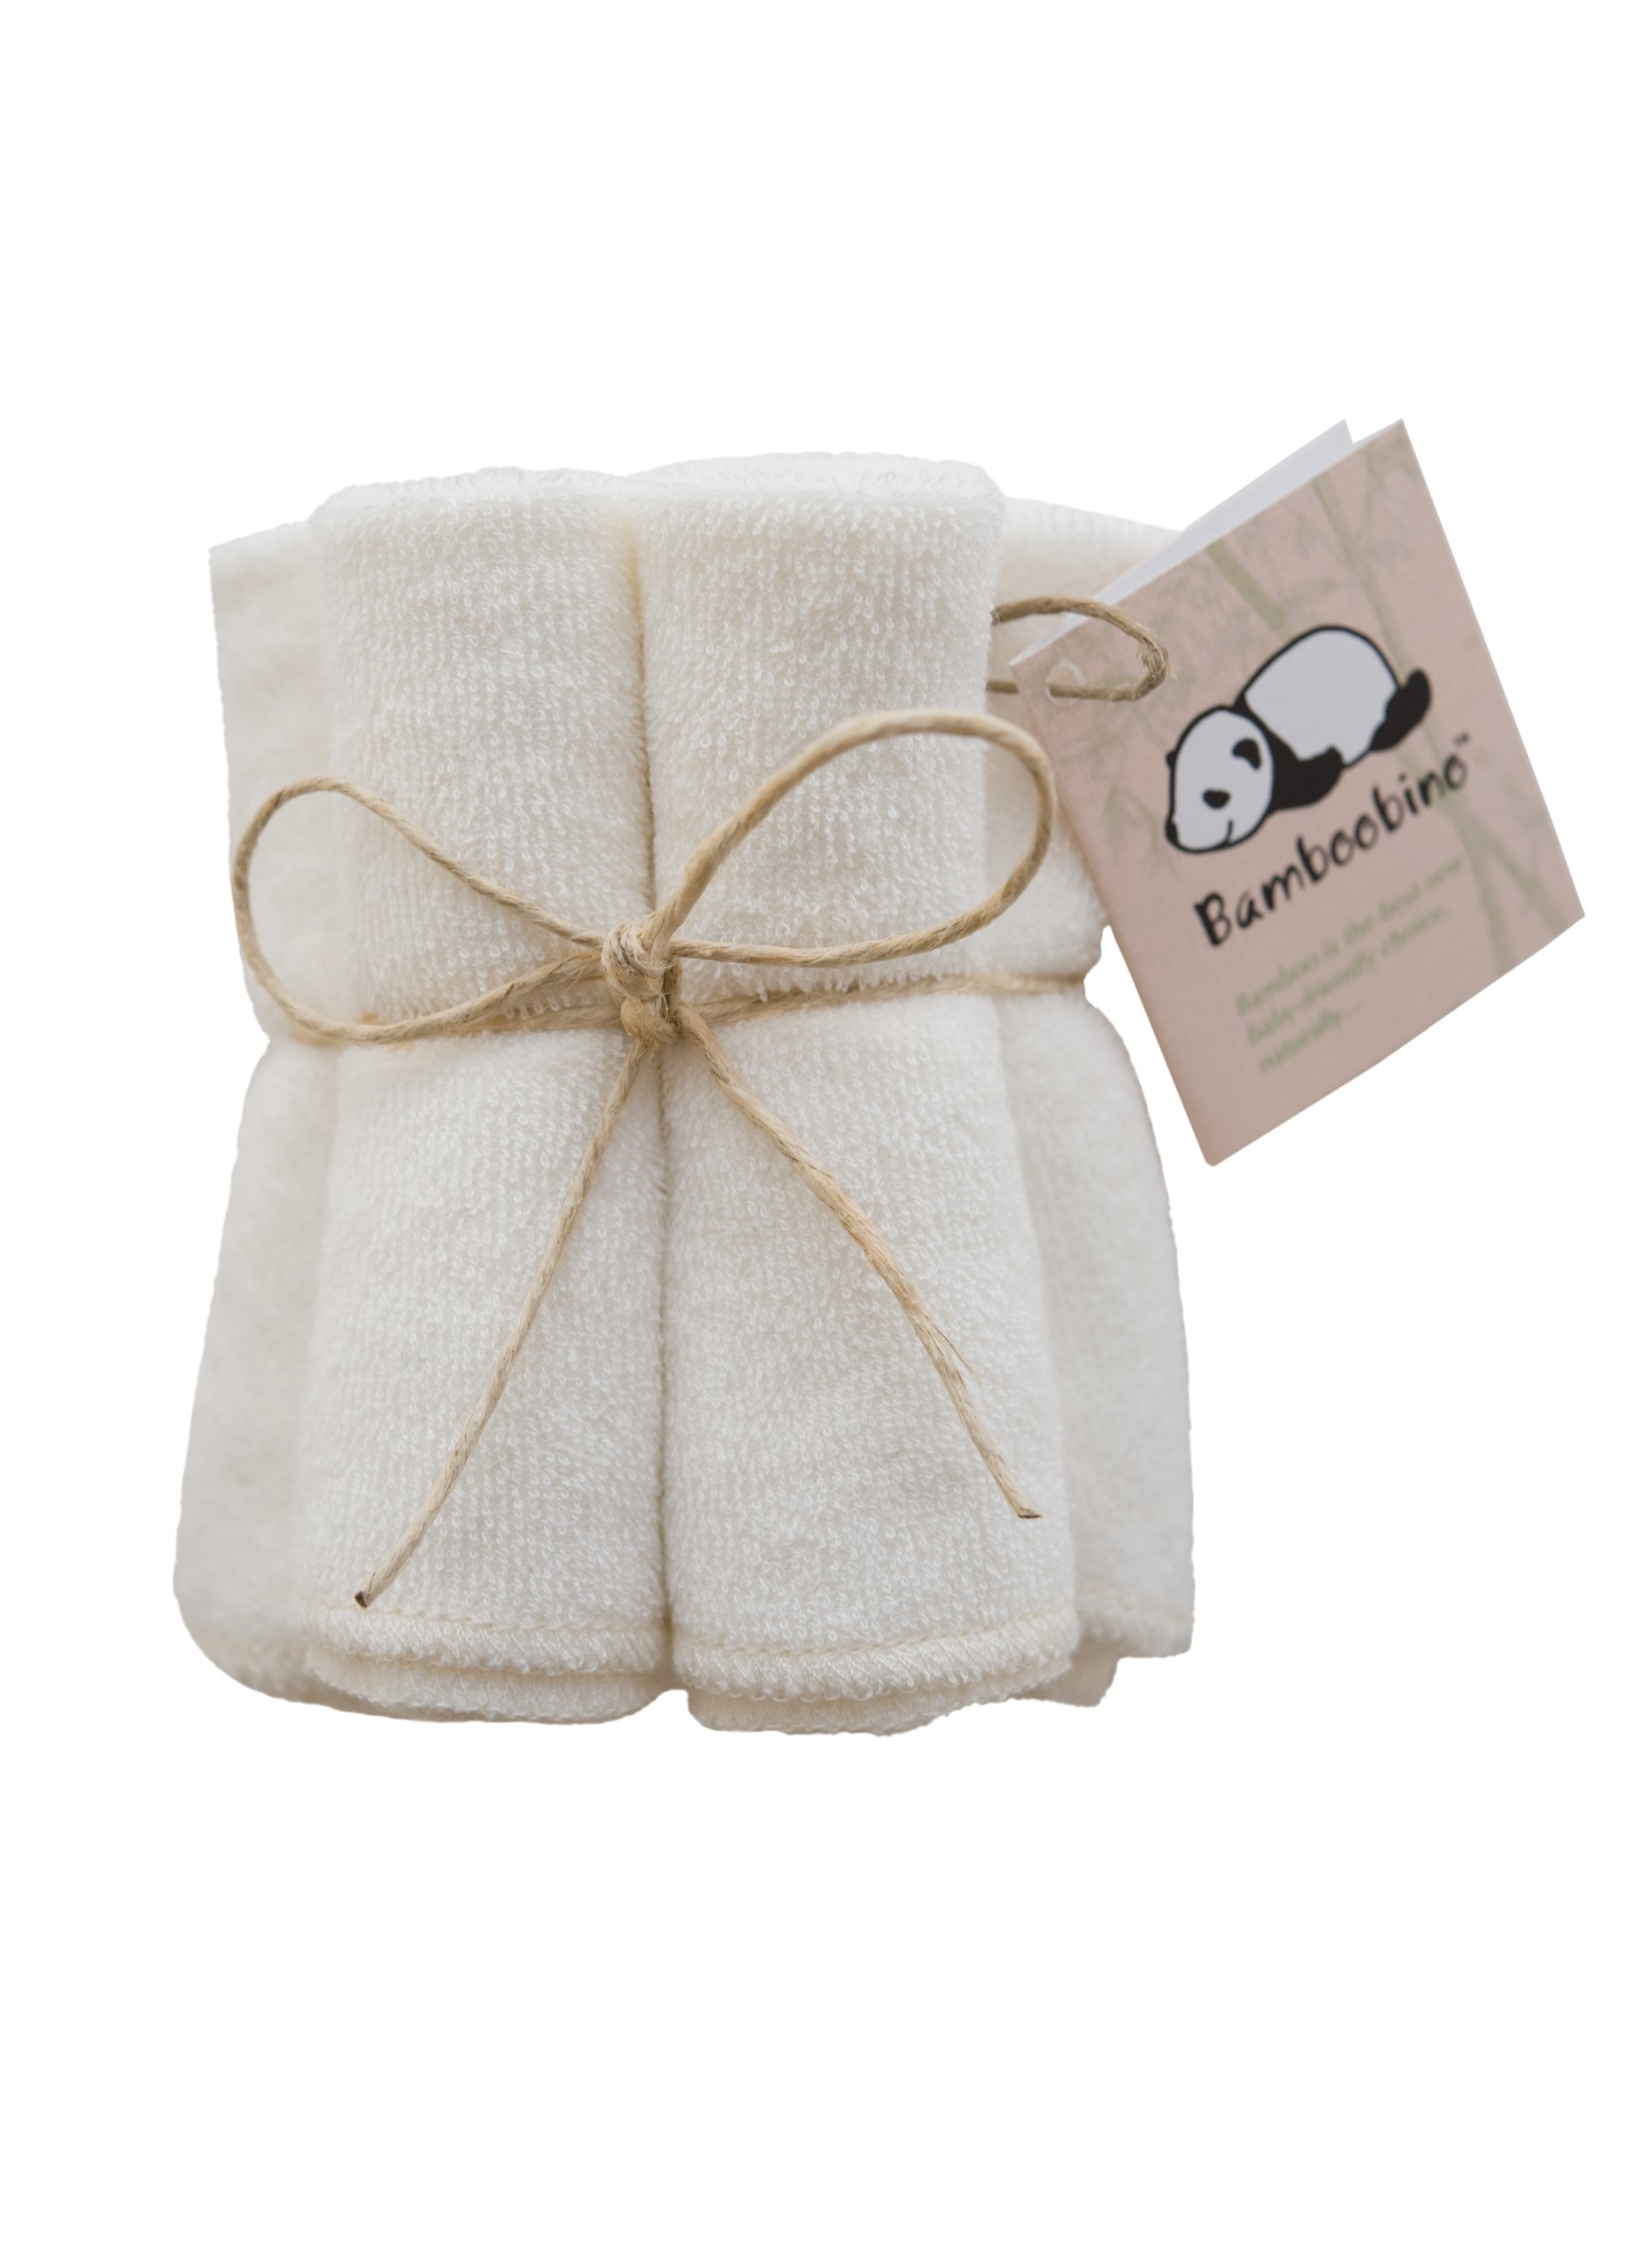 Bamboobino Baby Washcloths / Reusable Wipes (5-pack) Dye-Free, Super Soft and Absorbent Rayon from Bamboo & Organic Cotton Blend by *BAMBOOBINO*